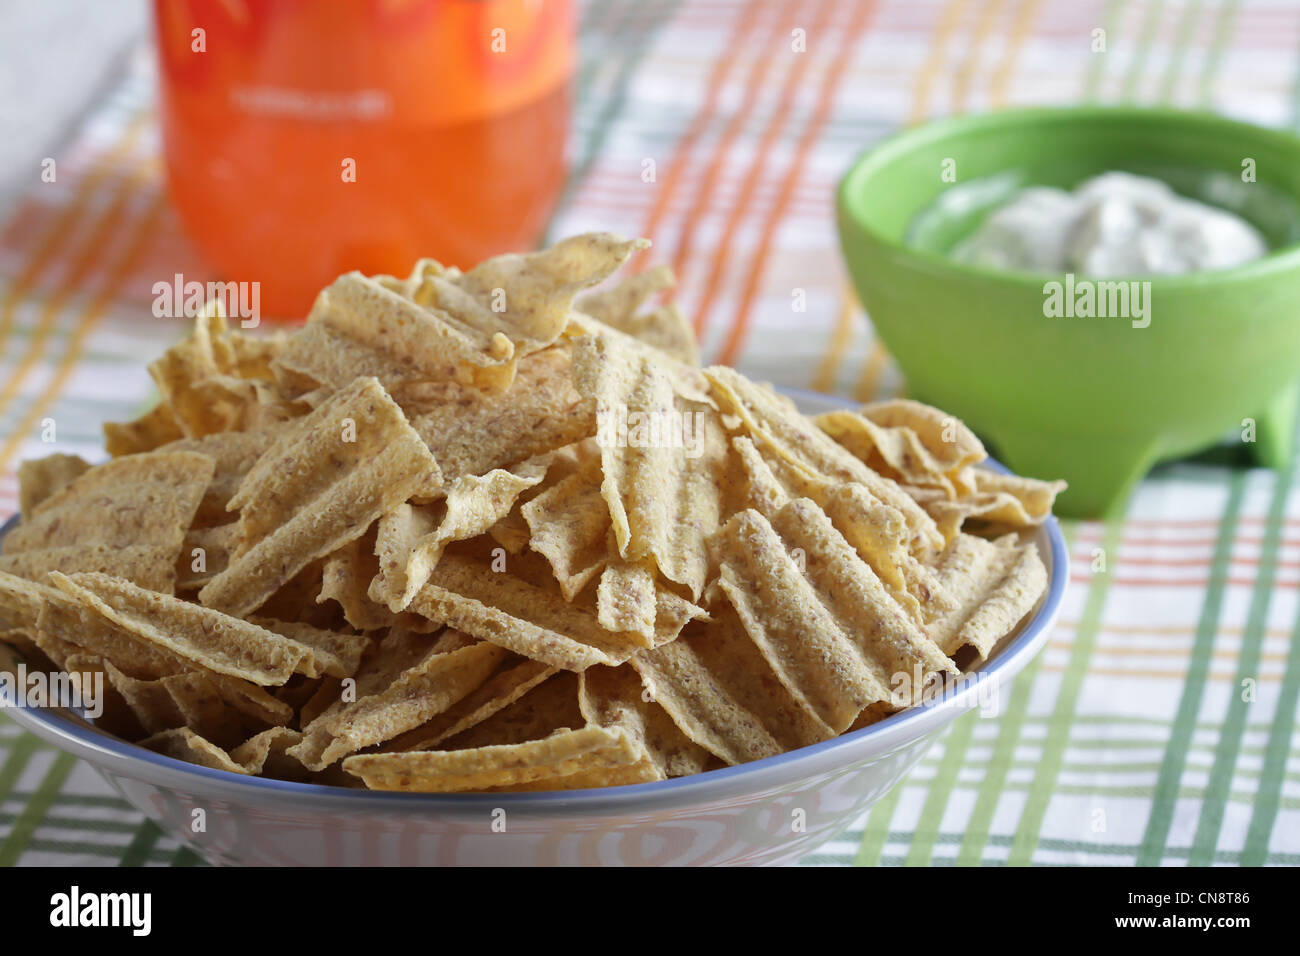 Bowl Of Sun Chips With Herb Dip And Orange Soda All On A Striped